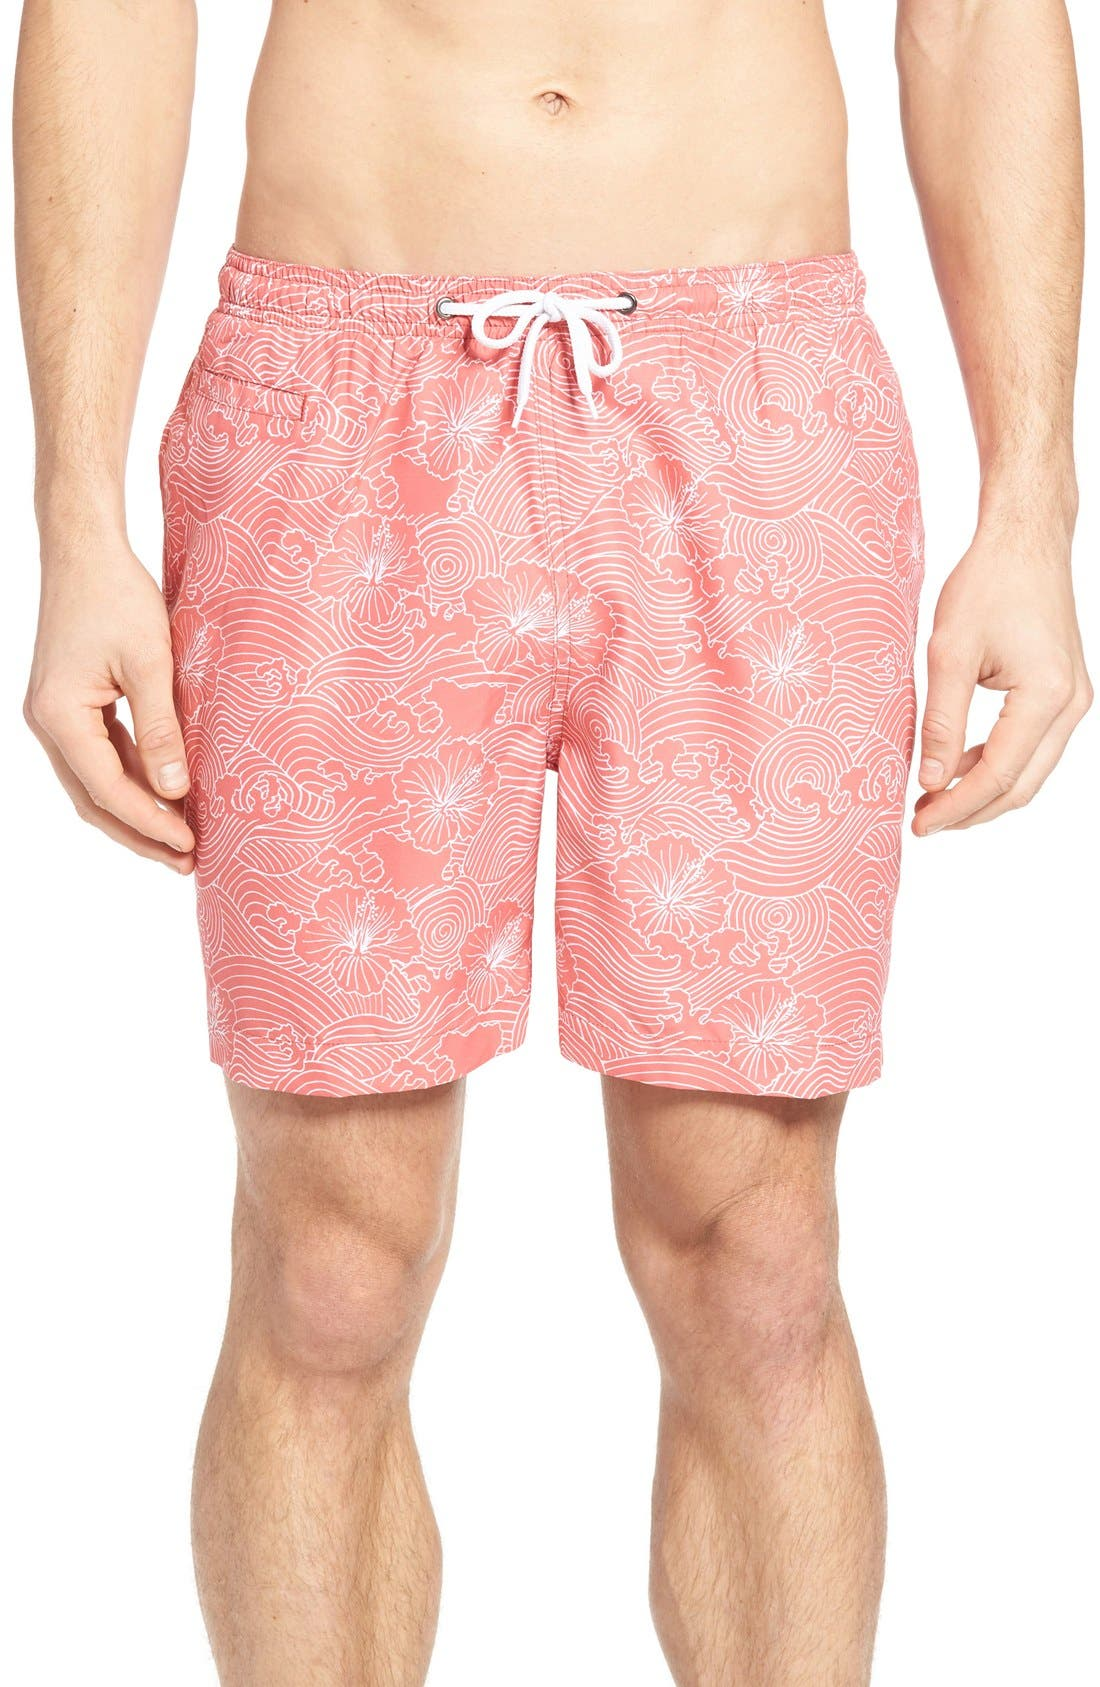 Trunks Surf & Swim Co. Hanagawa Wave San O Swim Trunks